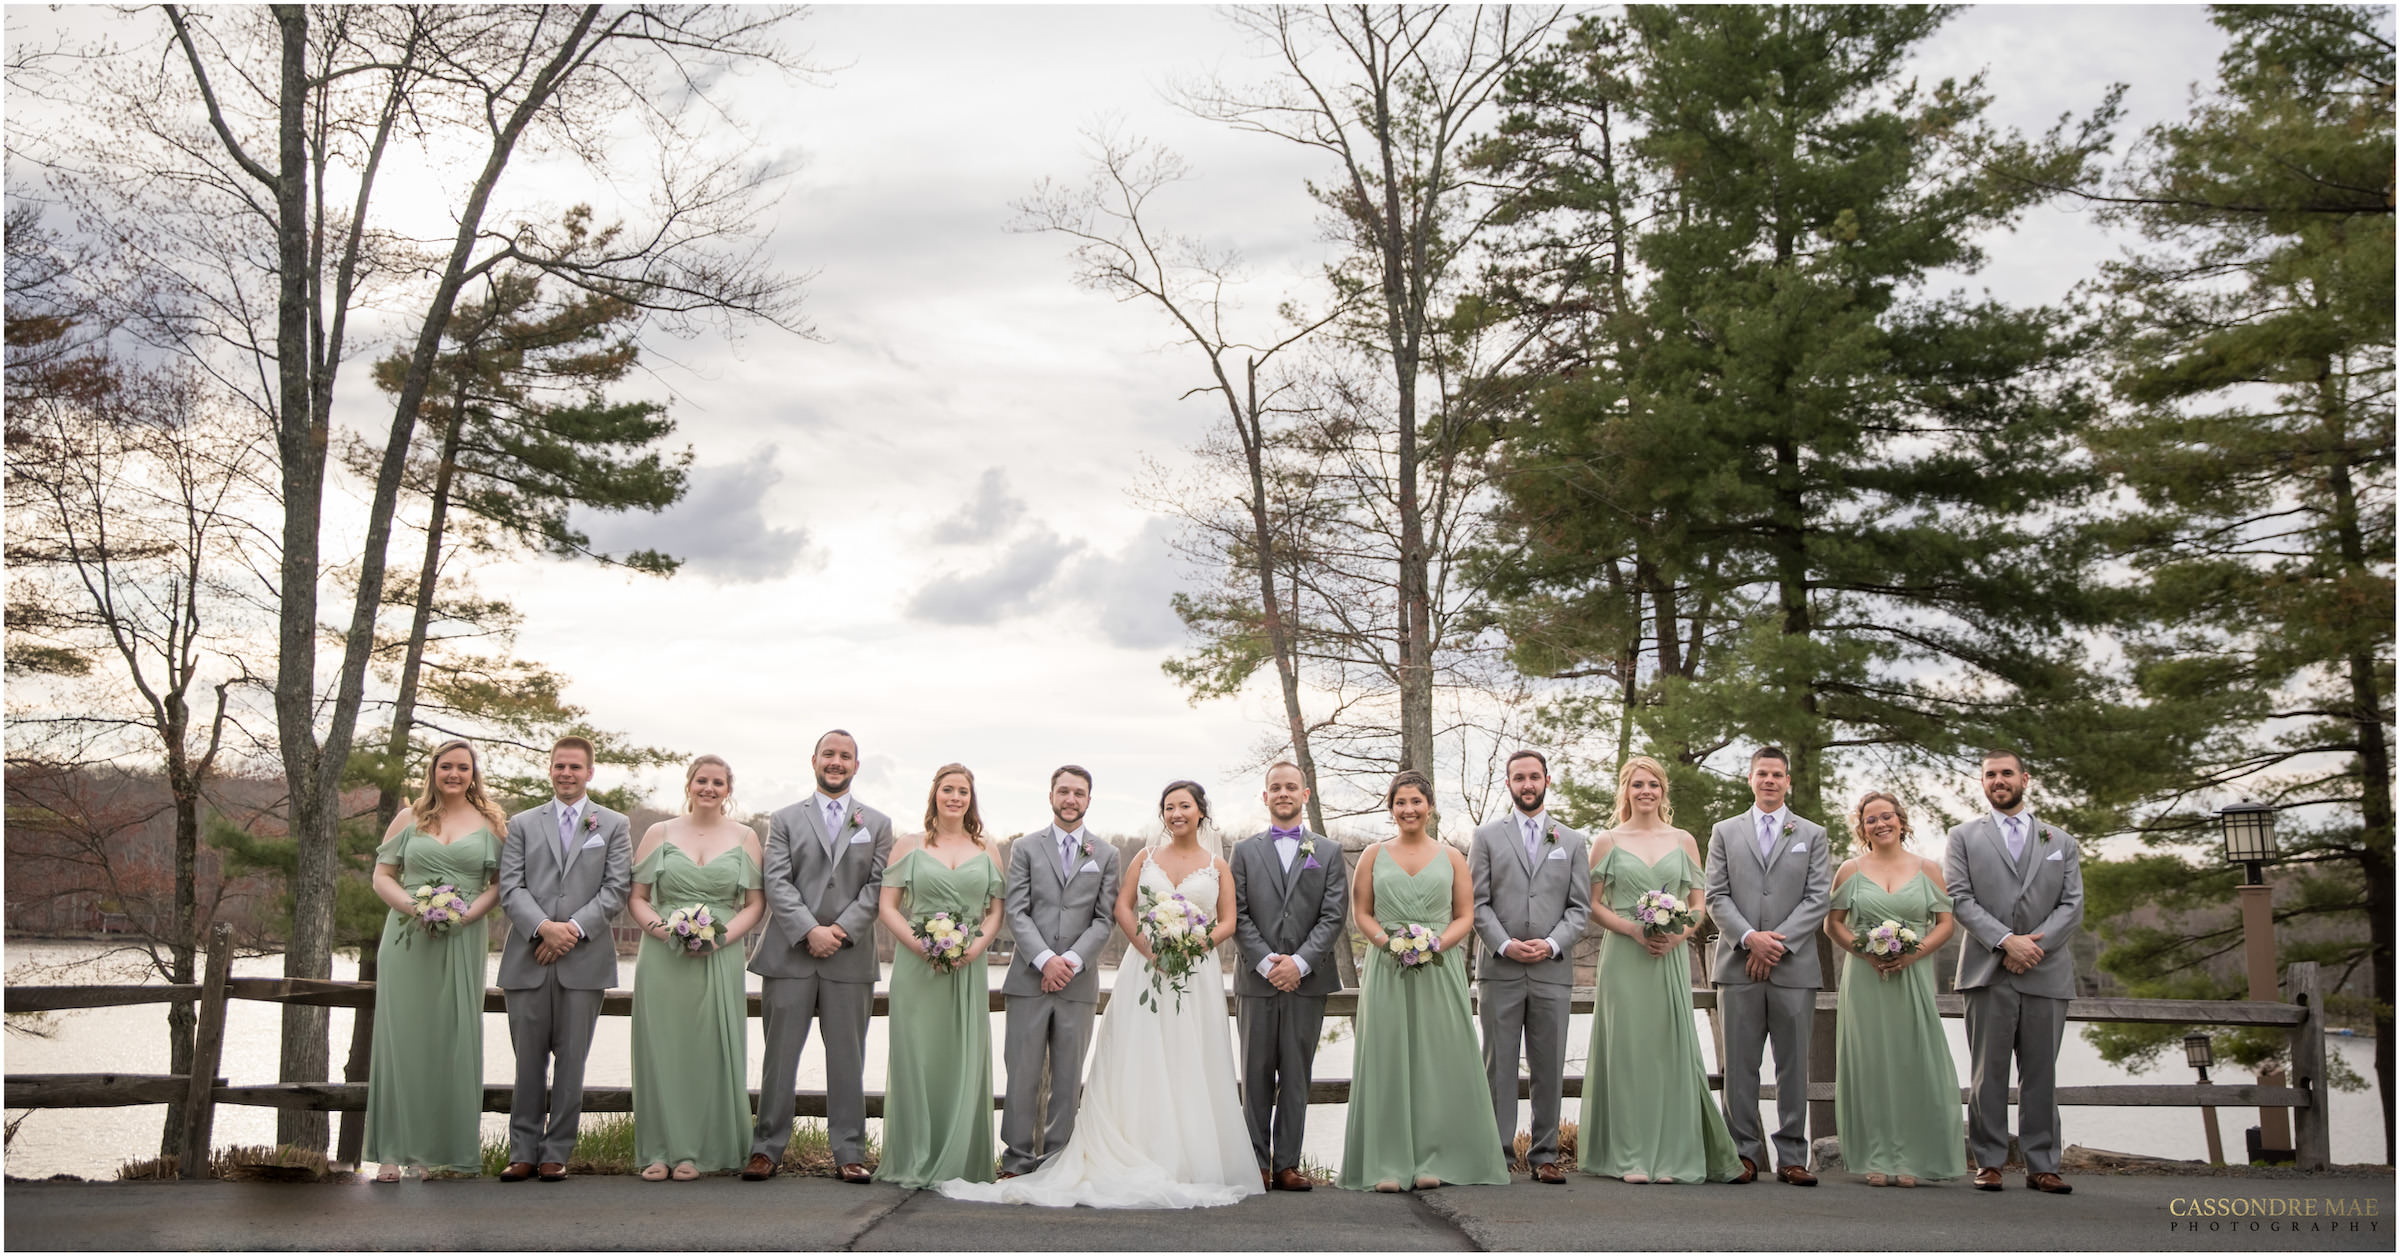 Cassondre Mae Photography Woodloch Resort Wedding 27.jpg